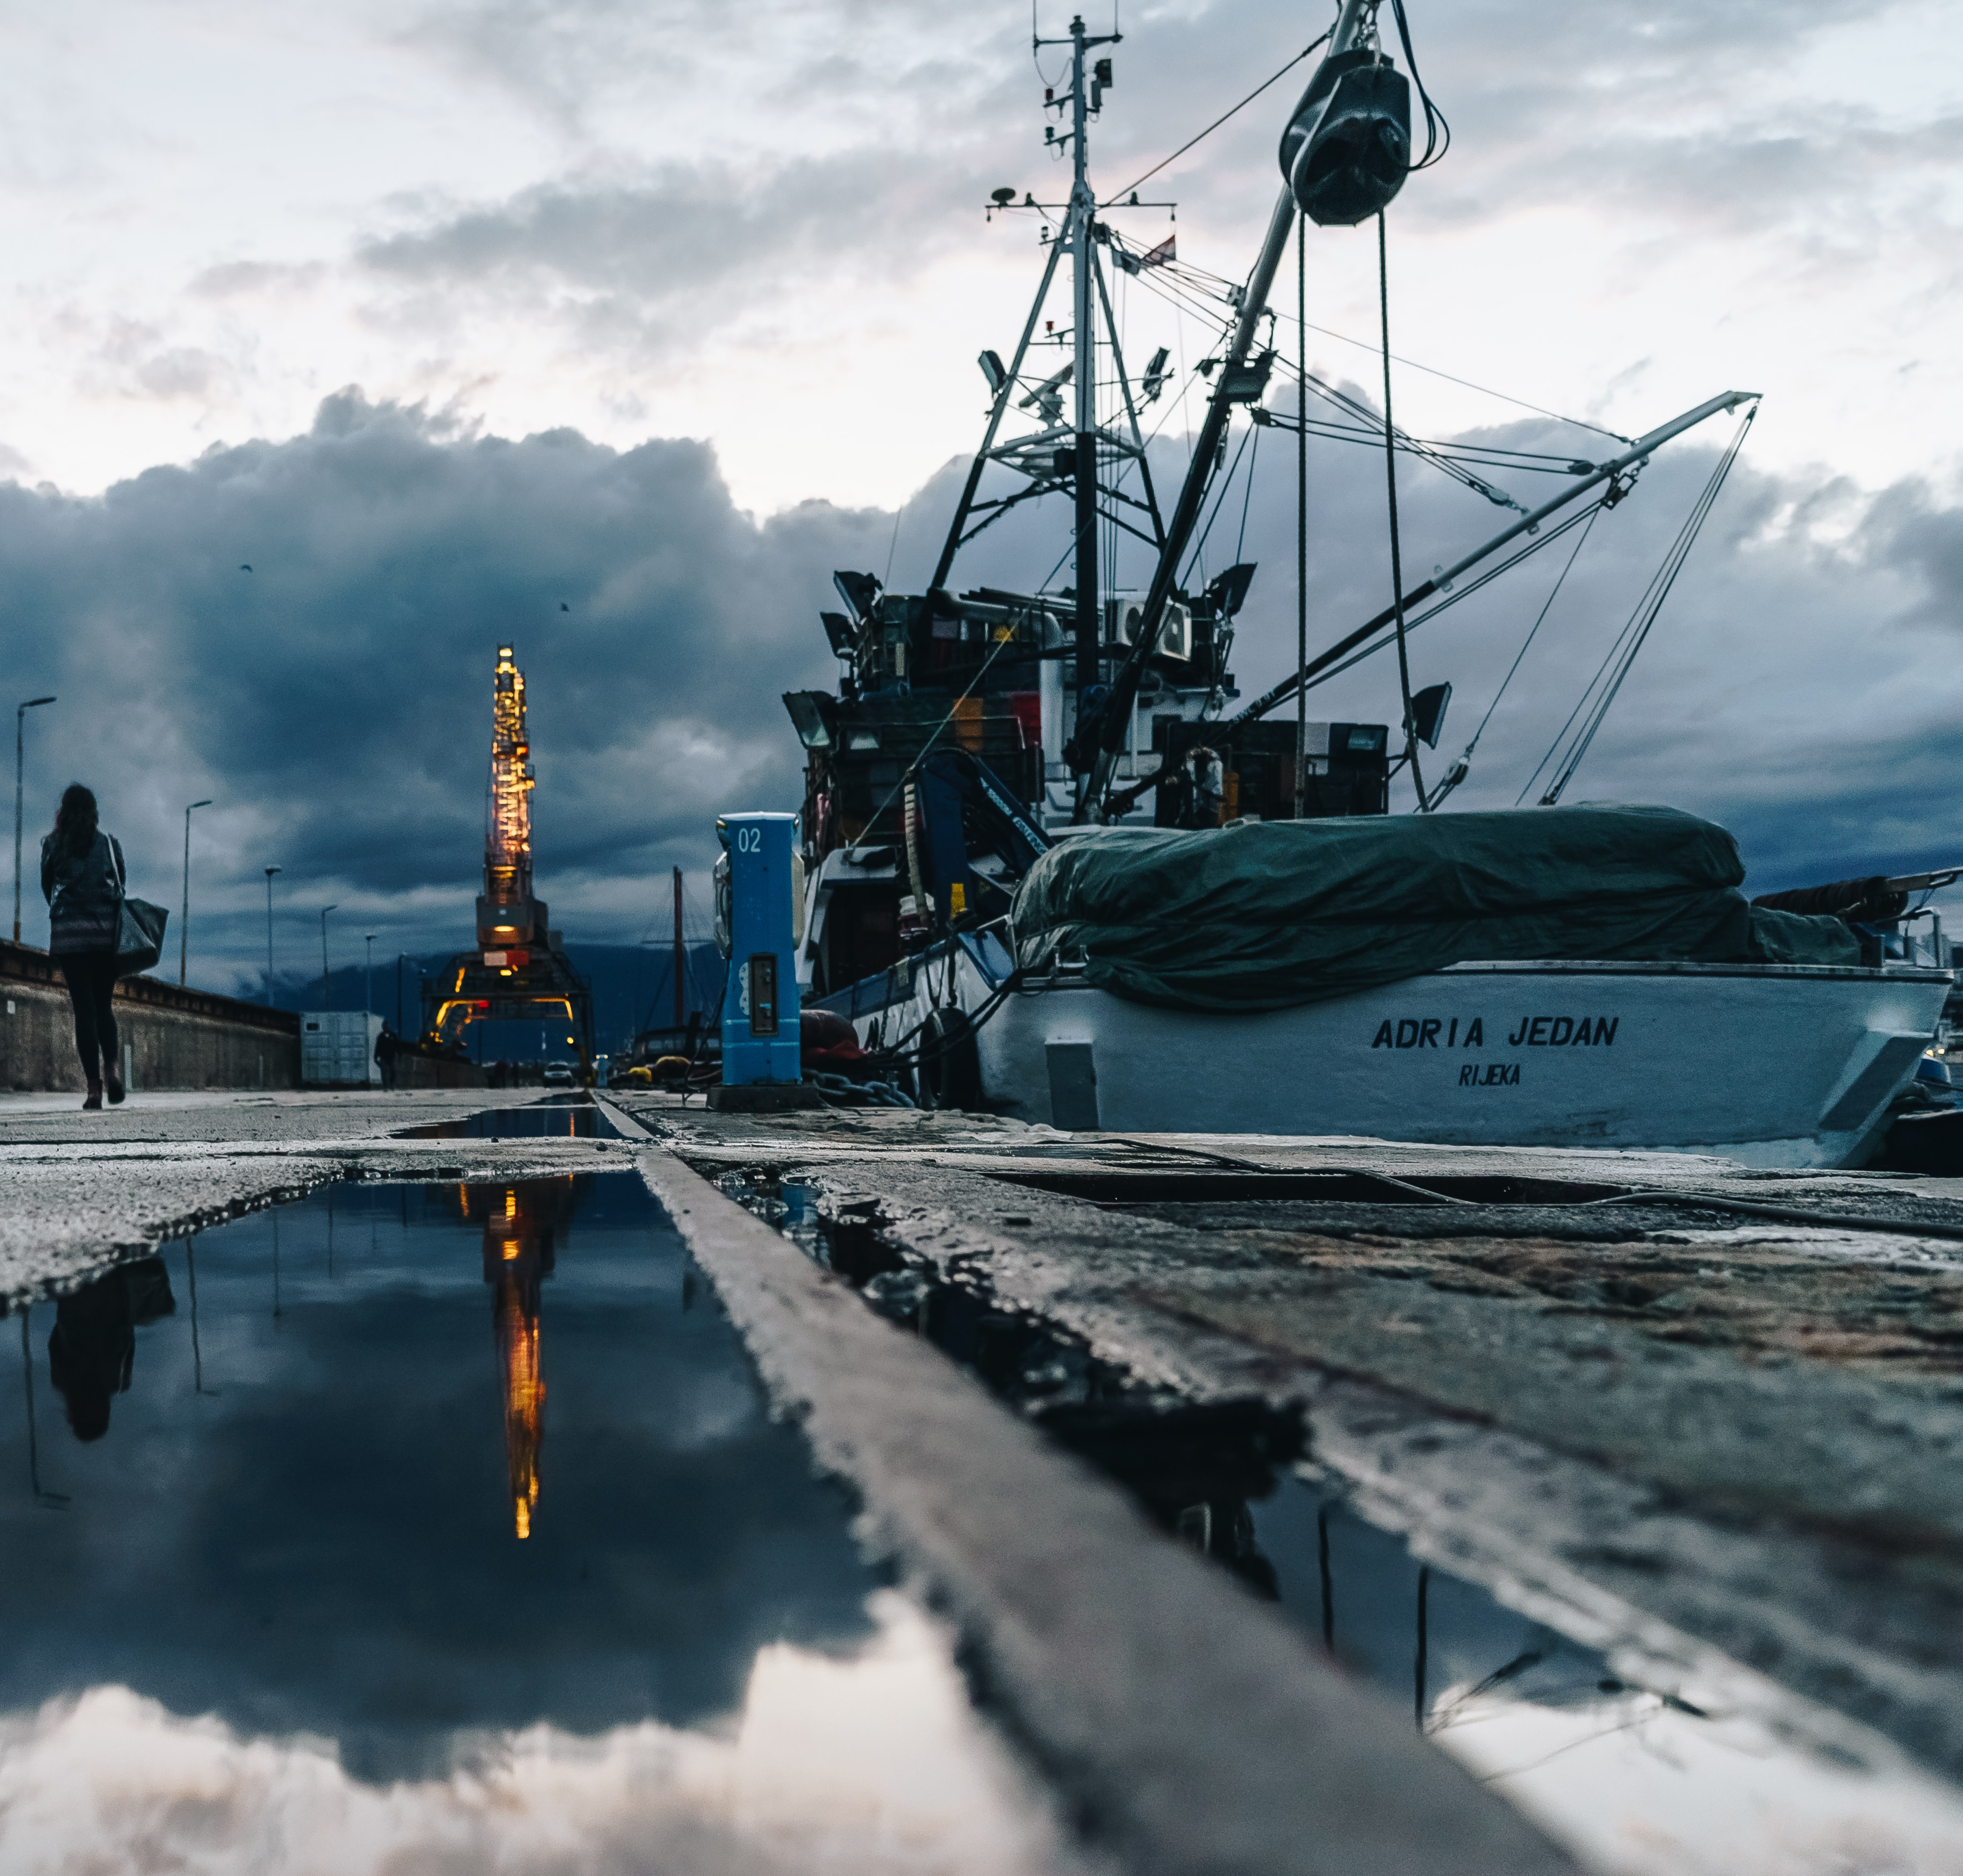 woman walking on pathway beside parked ship under white and blue cloudy skies